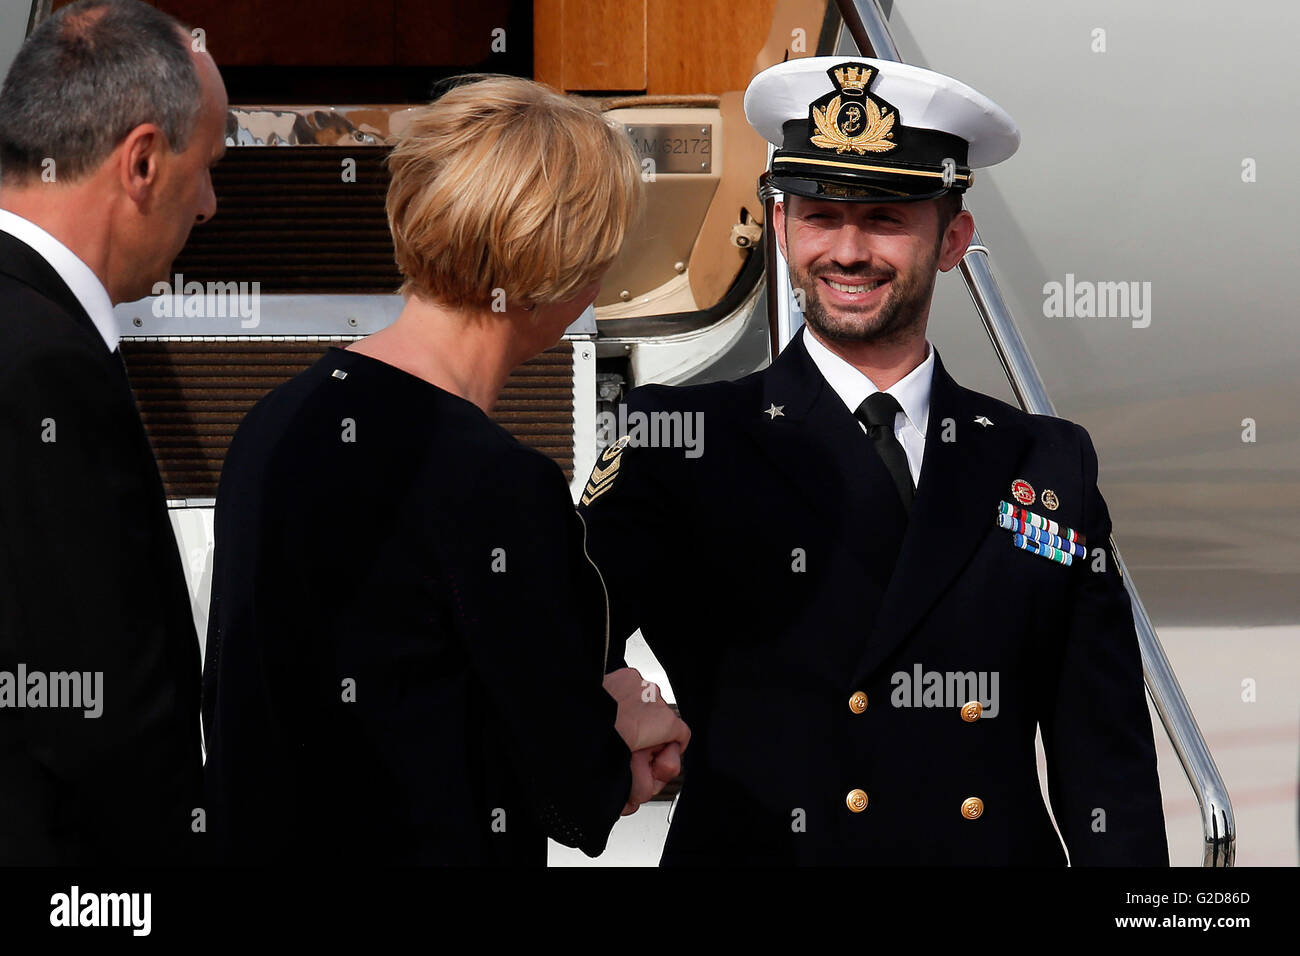 Salvatore Girone and Roberta Pinotti Rome 28th May 2016. Return of Salvatore Girone, the non-comissioned officer - Stock Image